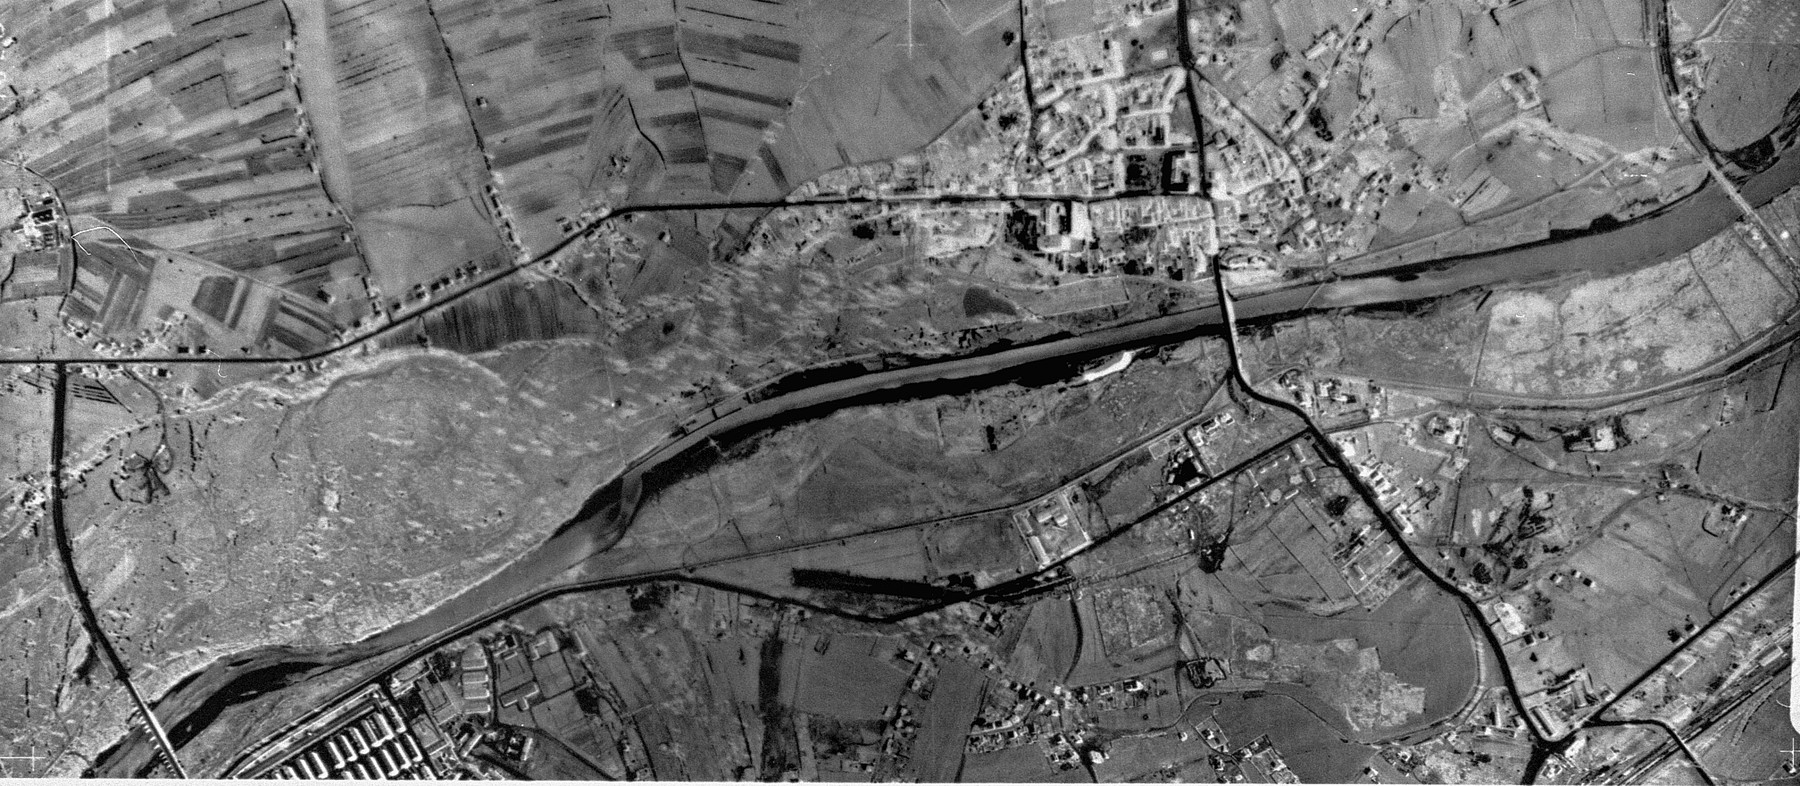 An aerial reconnaissance photograph of the Auschwitz area showing a small corner of  Auschwitz I .  The town of Oswiecim appears in the middle of the image.